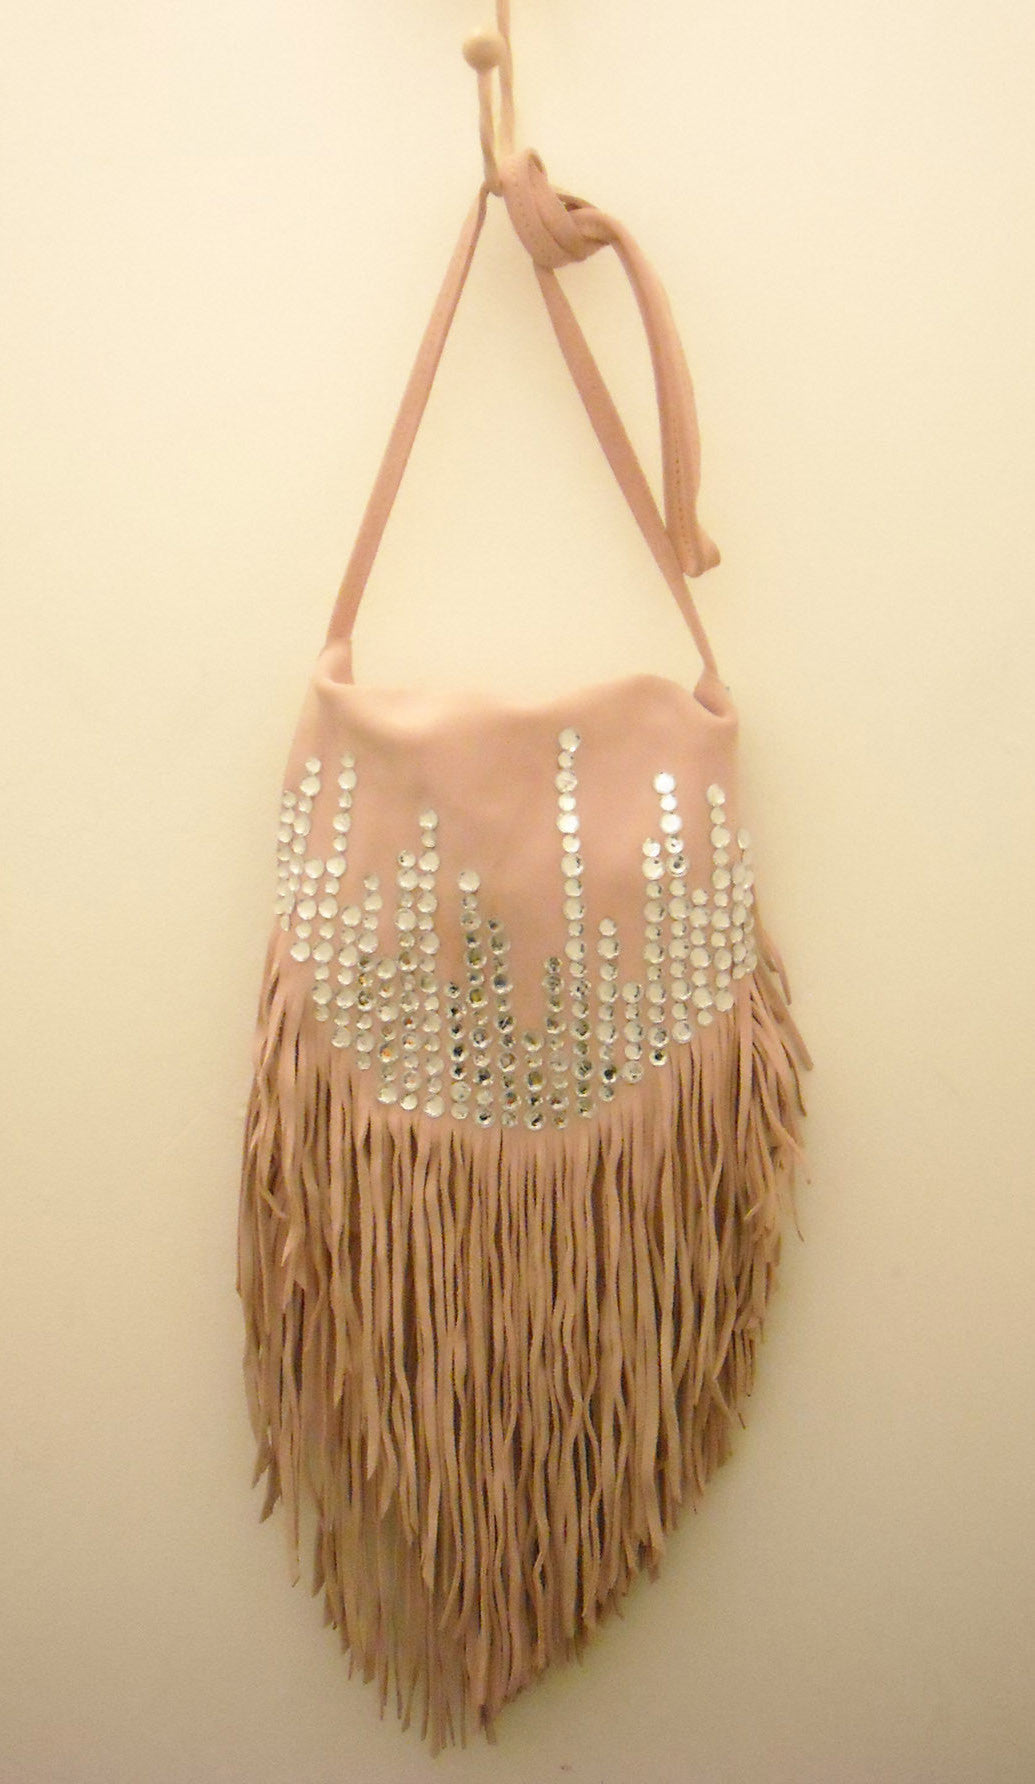 Bejewelled! Handmade Leather Fringe Sling Bag Pink